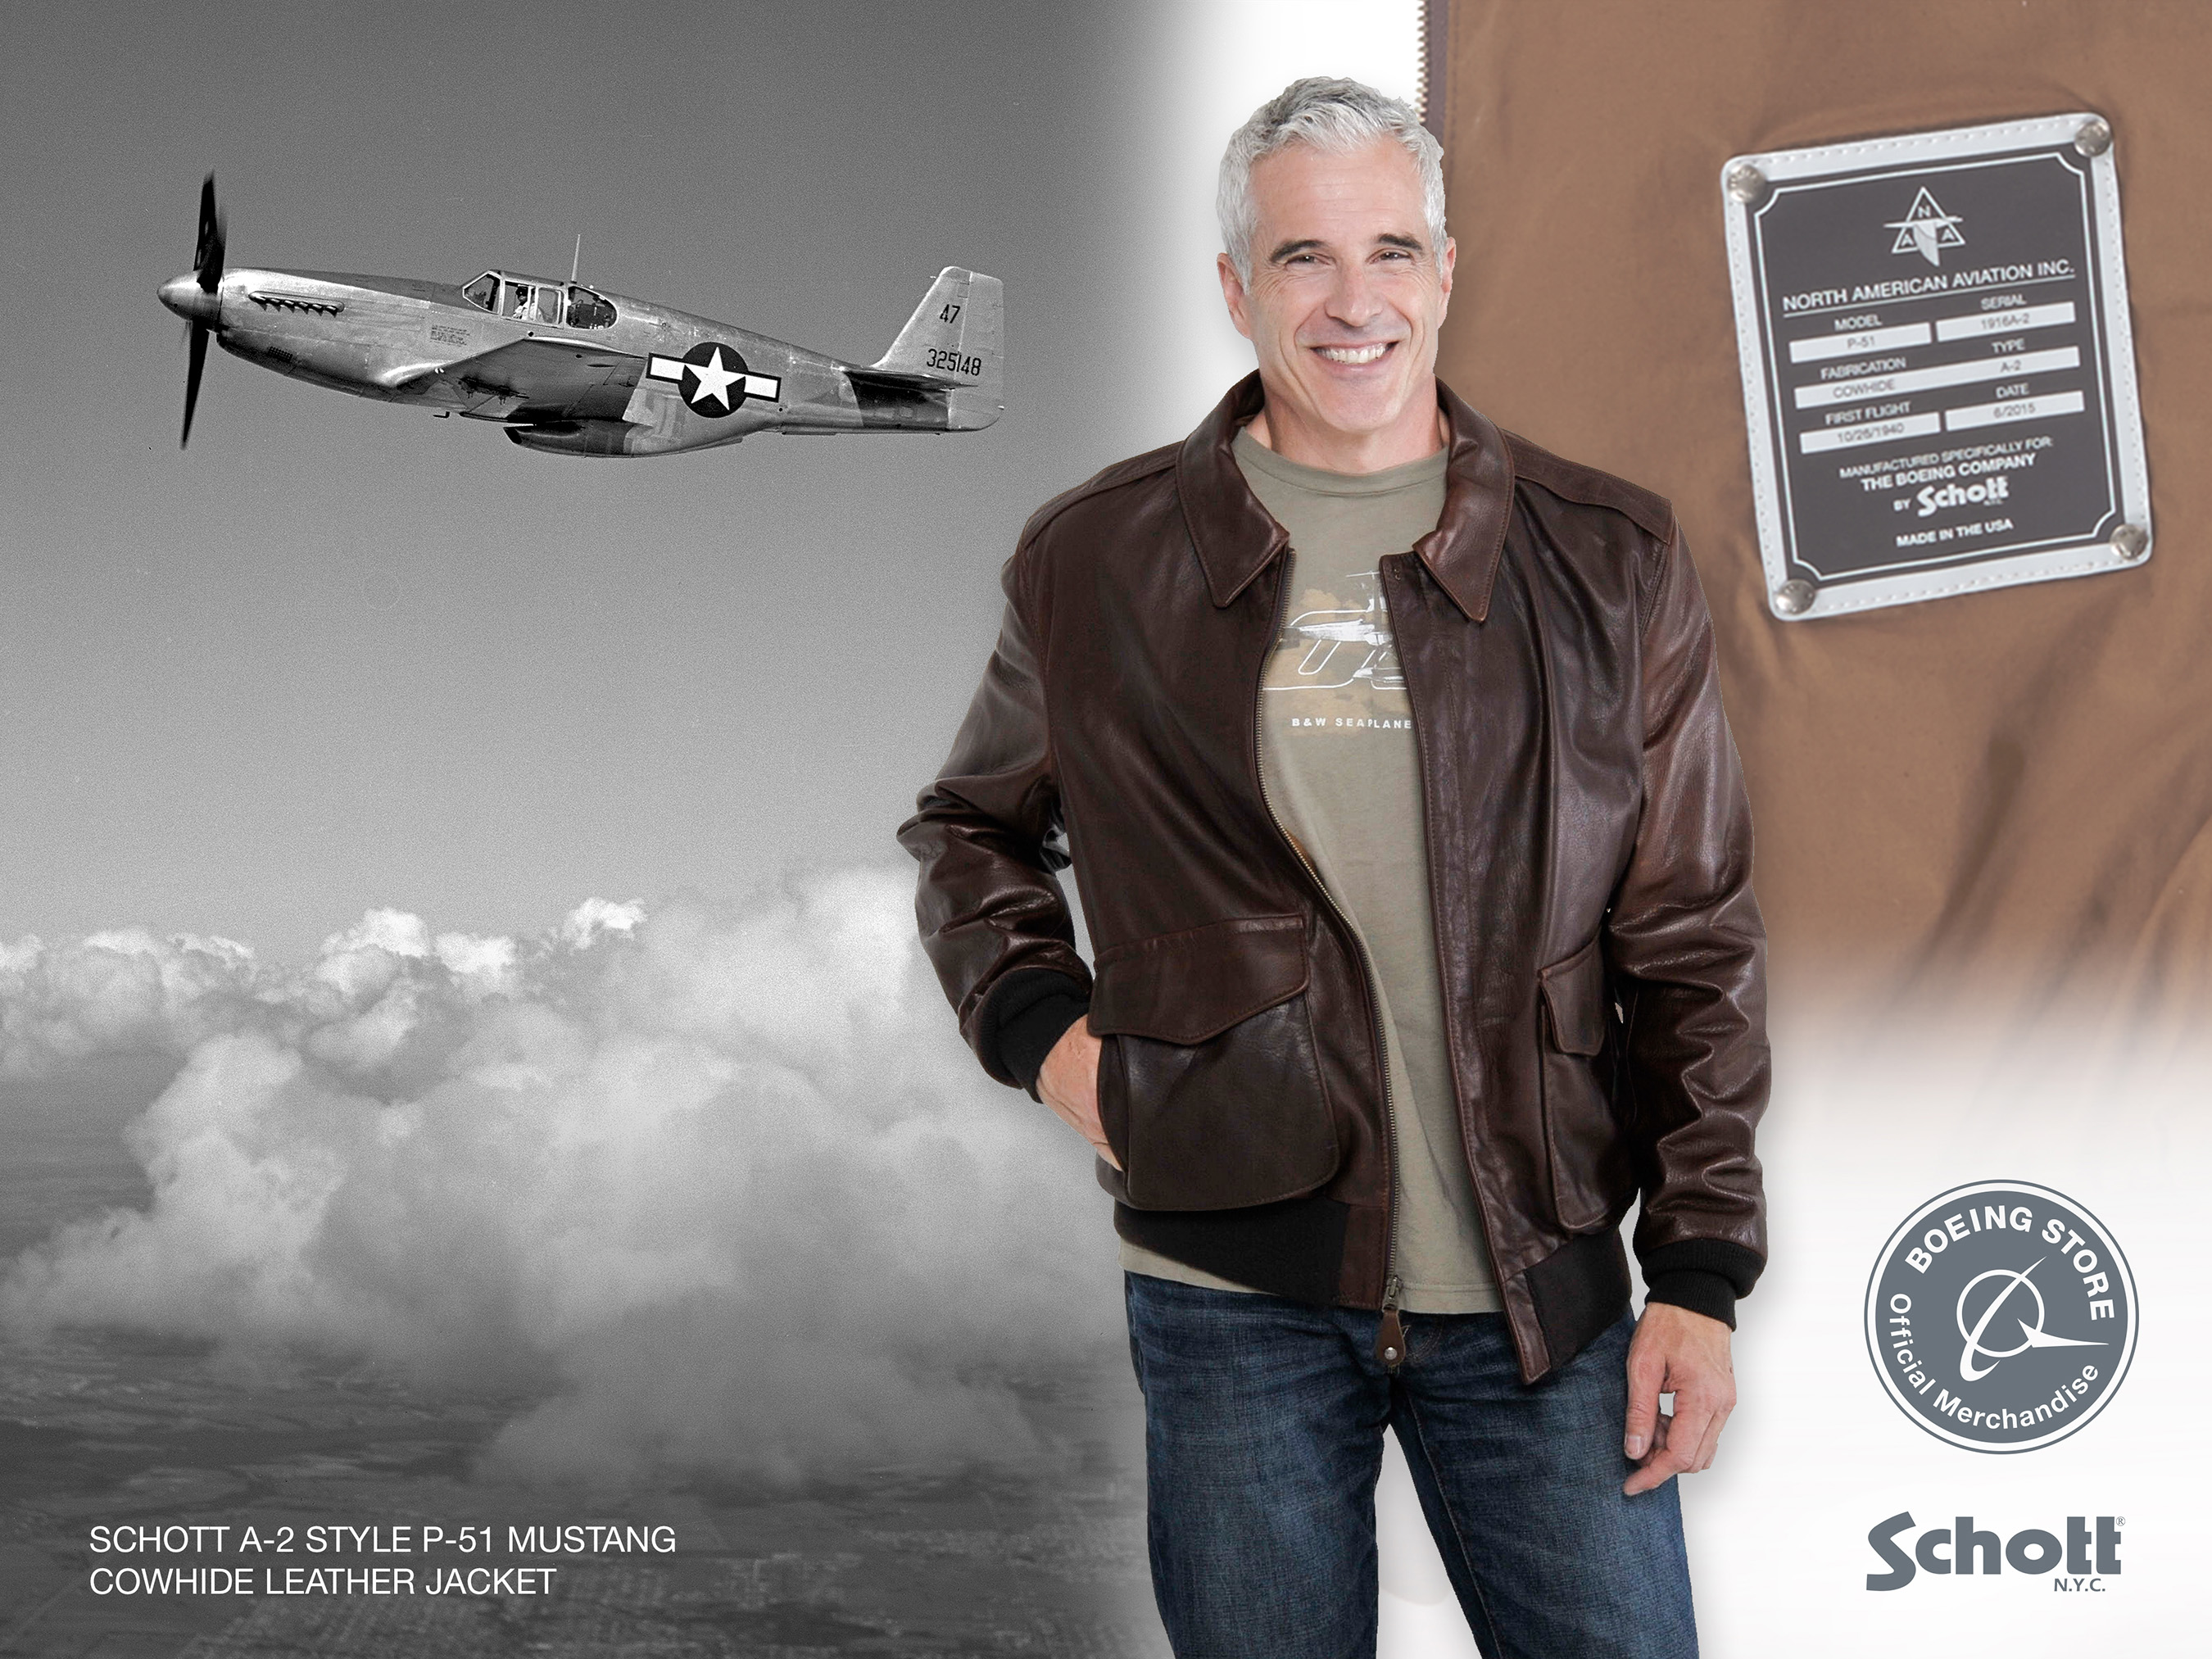 Schott A-2 Style P-51 Mustang Cowhide Leather Jacket Caption: This version of its classic A-2 leather aviator jacket, designed especially for the Boeing centennial, salutes a Boeing heritage legend, the North American P-51 Mustang fighter.